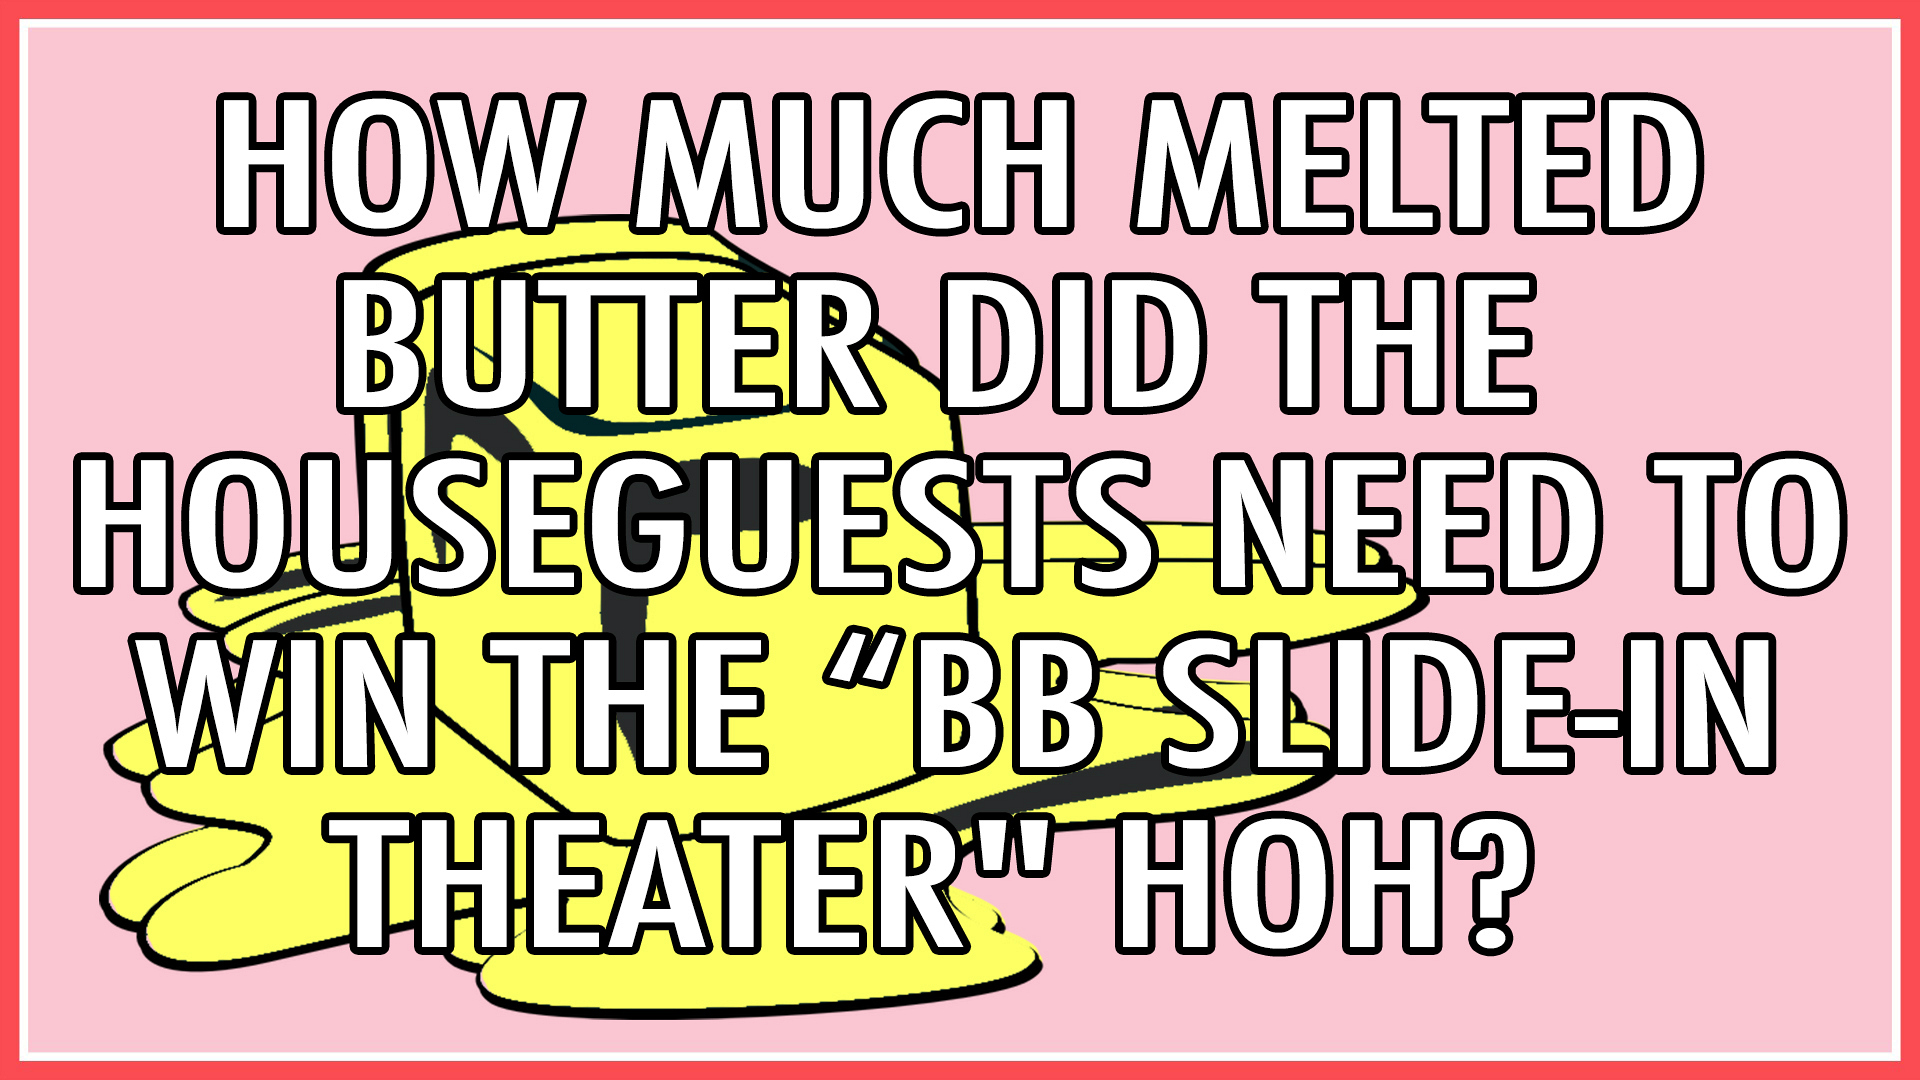 """How much melted butter did the Houseguests need to win the """"BB Slide-In Theater"""" HOH?"""